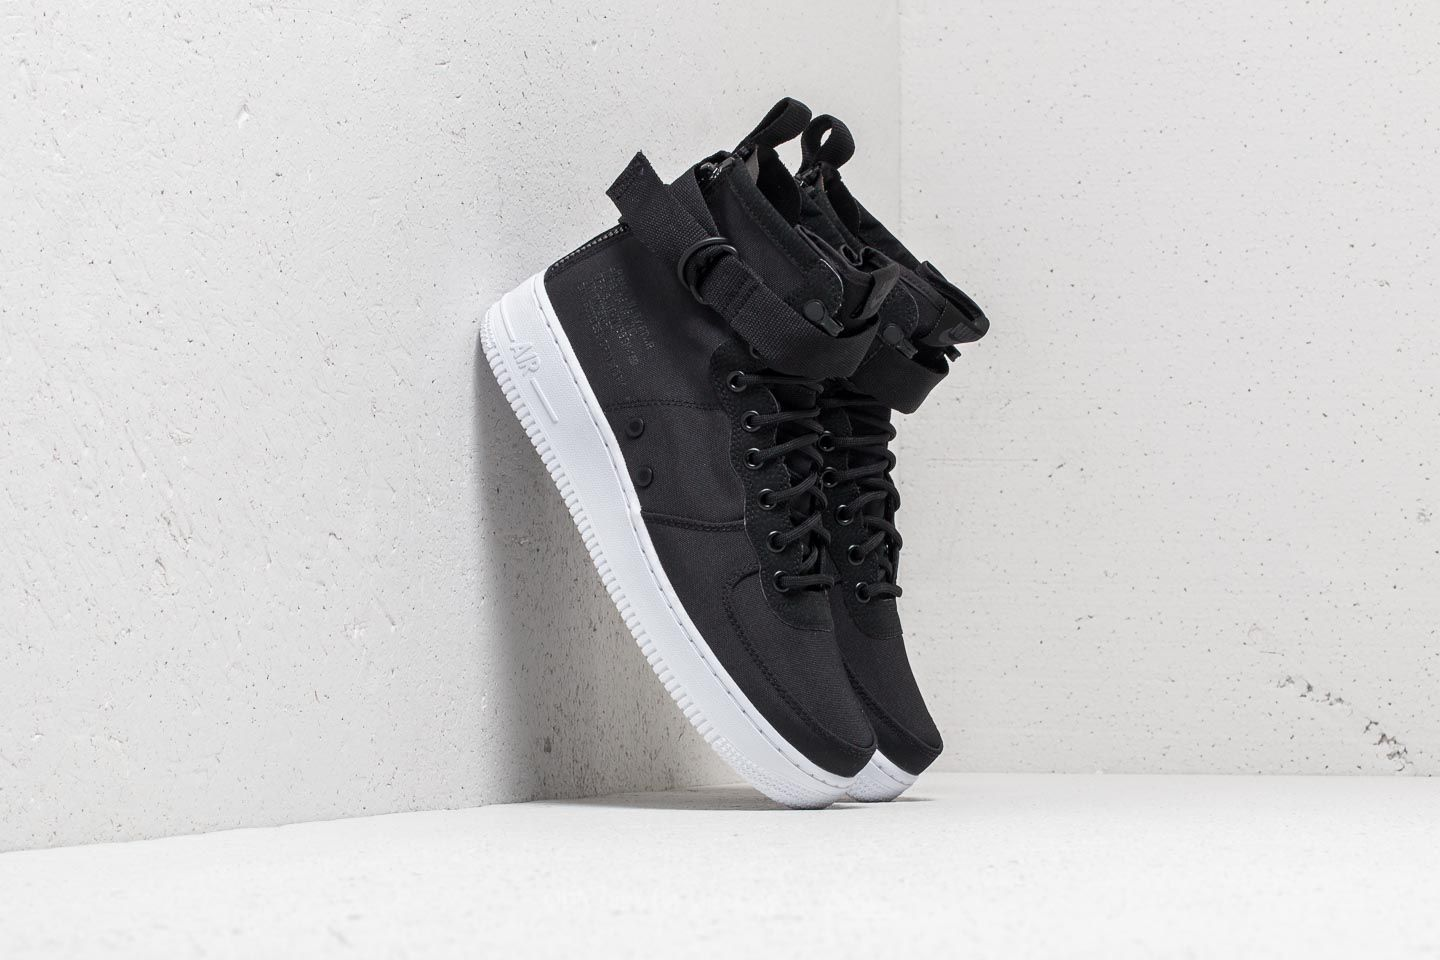 da3ee8e458b Nike Special Field Air Force 1 Mid Black  Anthracite-White